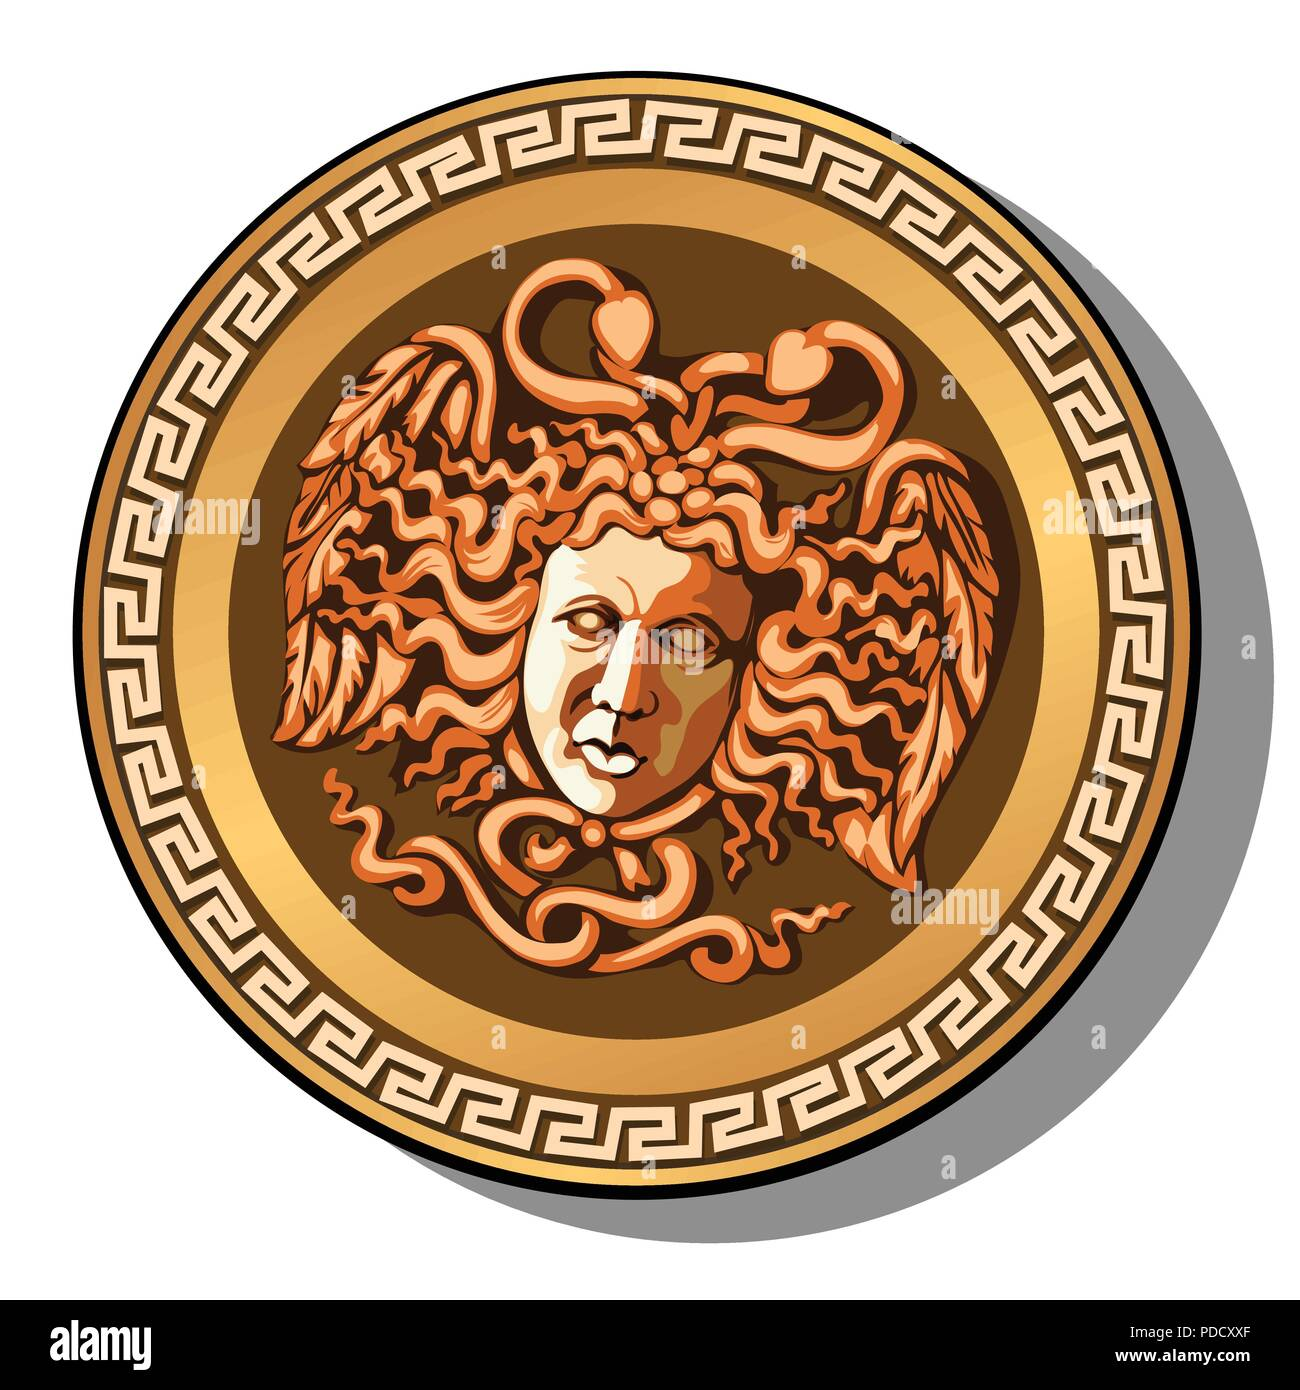 The engraved head of Medusa Gorgon head isolated on white background. Cartoon vector close-up illustration. - Stock Vector